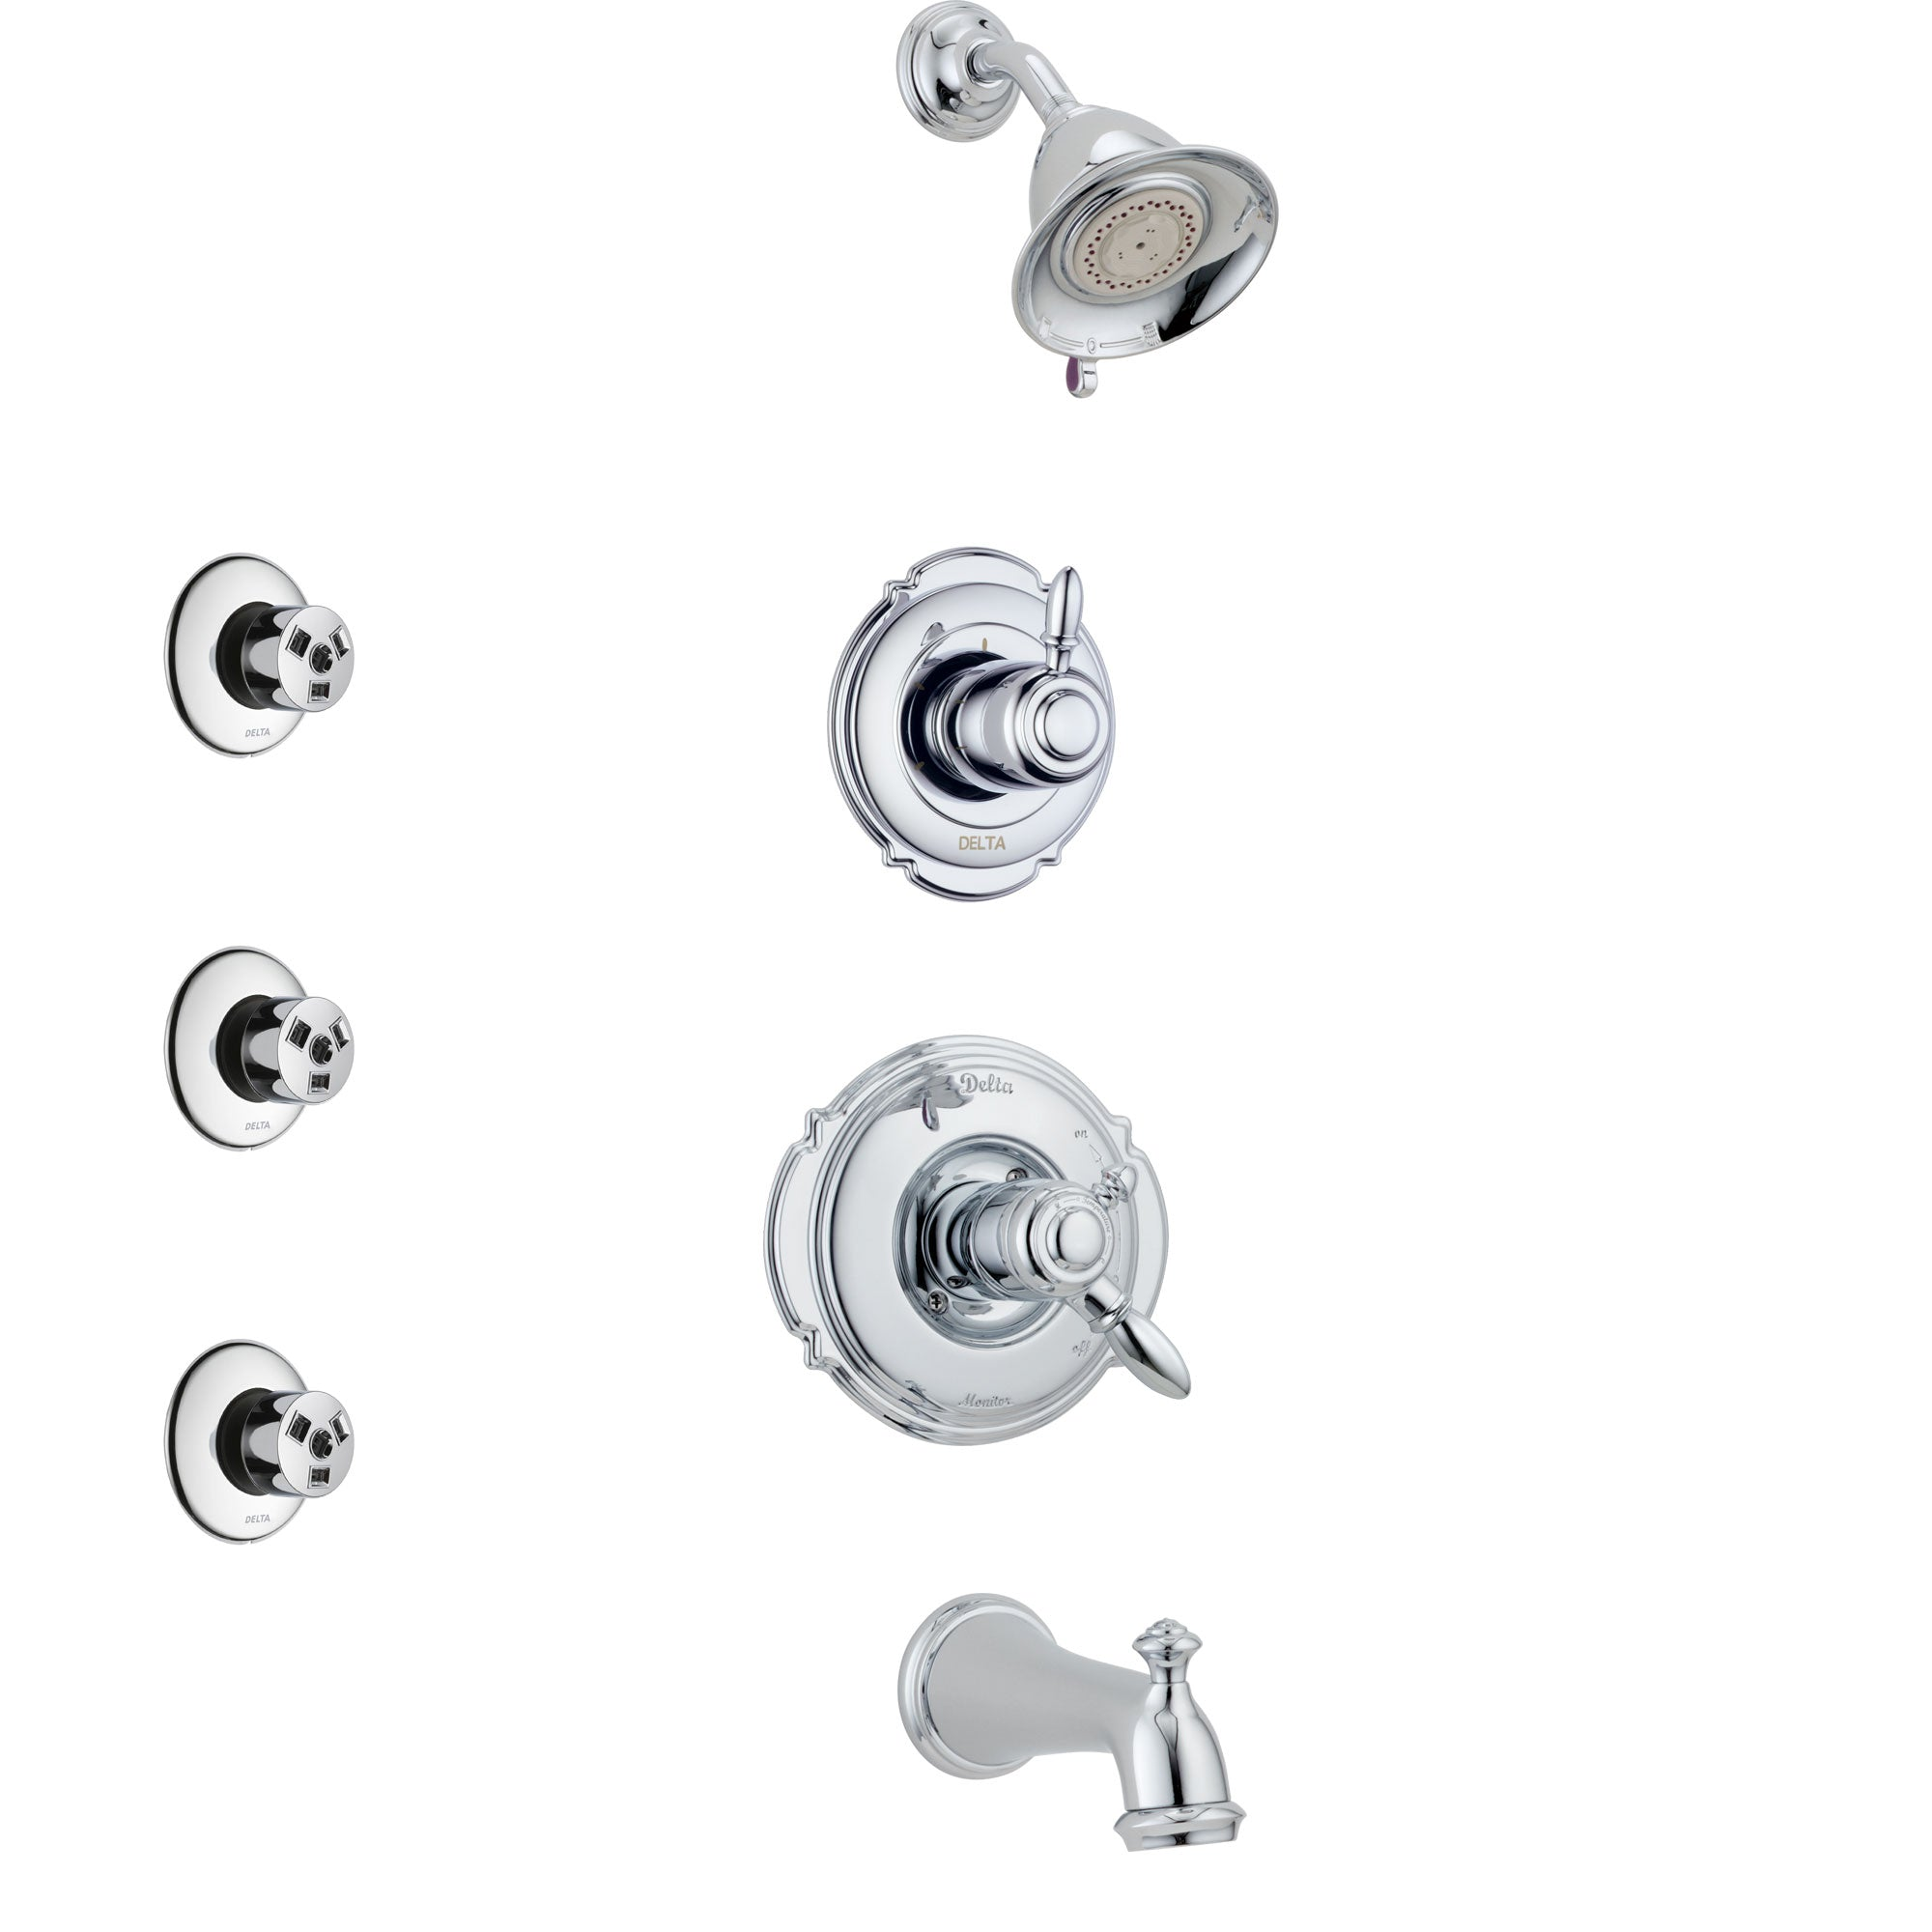 Delta Victorian Chrome Finish Tub and Shower System with Dual Control Handle, 3-Setting Diverter, Showerhead, and 3 Body Sprays SS1745512